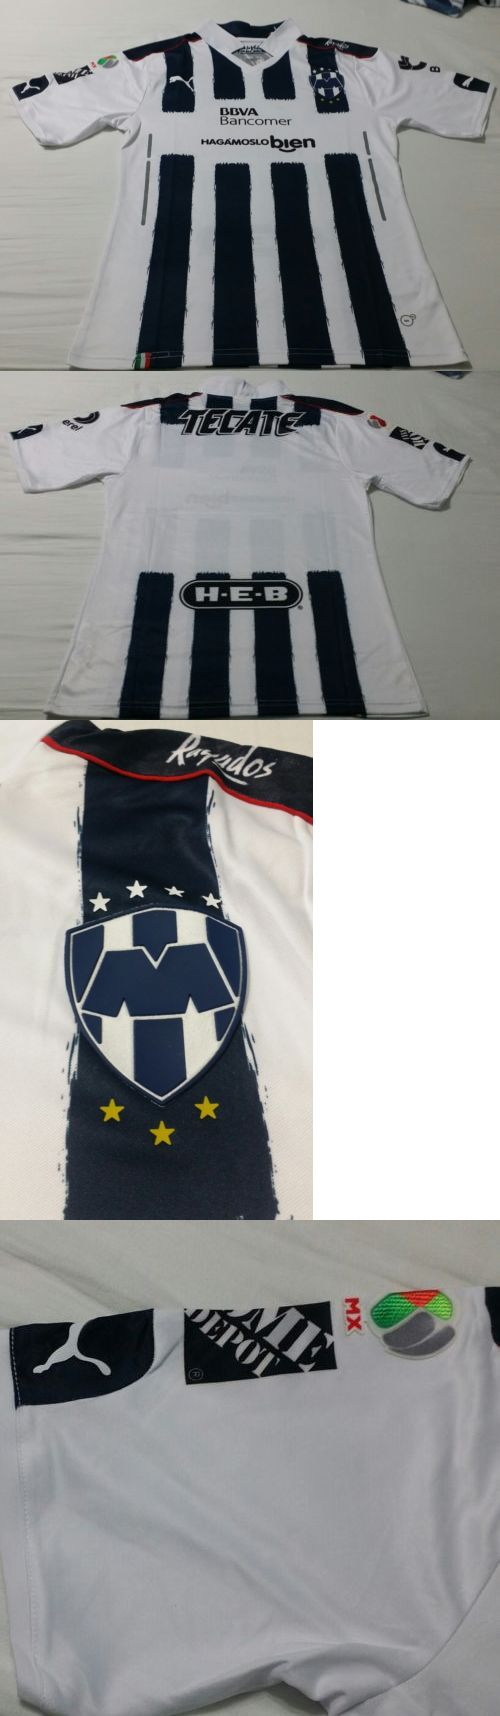 Men 123490: New Club Monterrey Rayados Blue 2017 Soccer Jersey Size L -> BUY IT NOW ONLY: $44.97 on eBay!